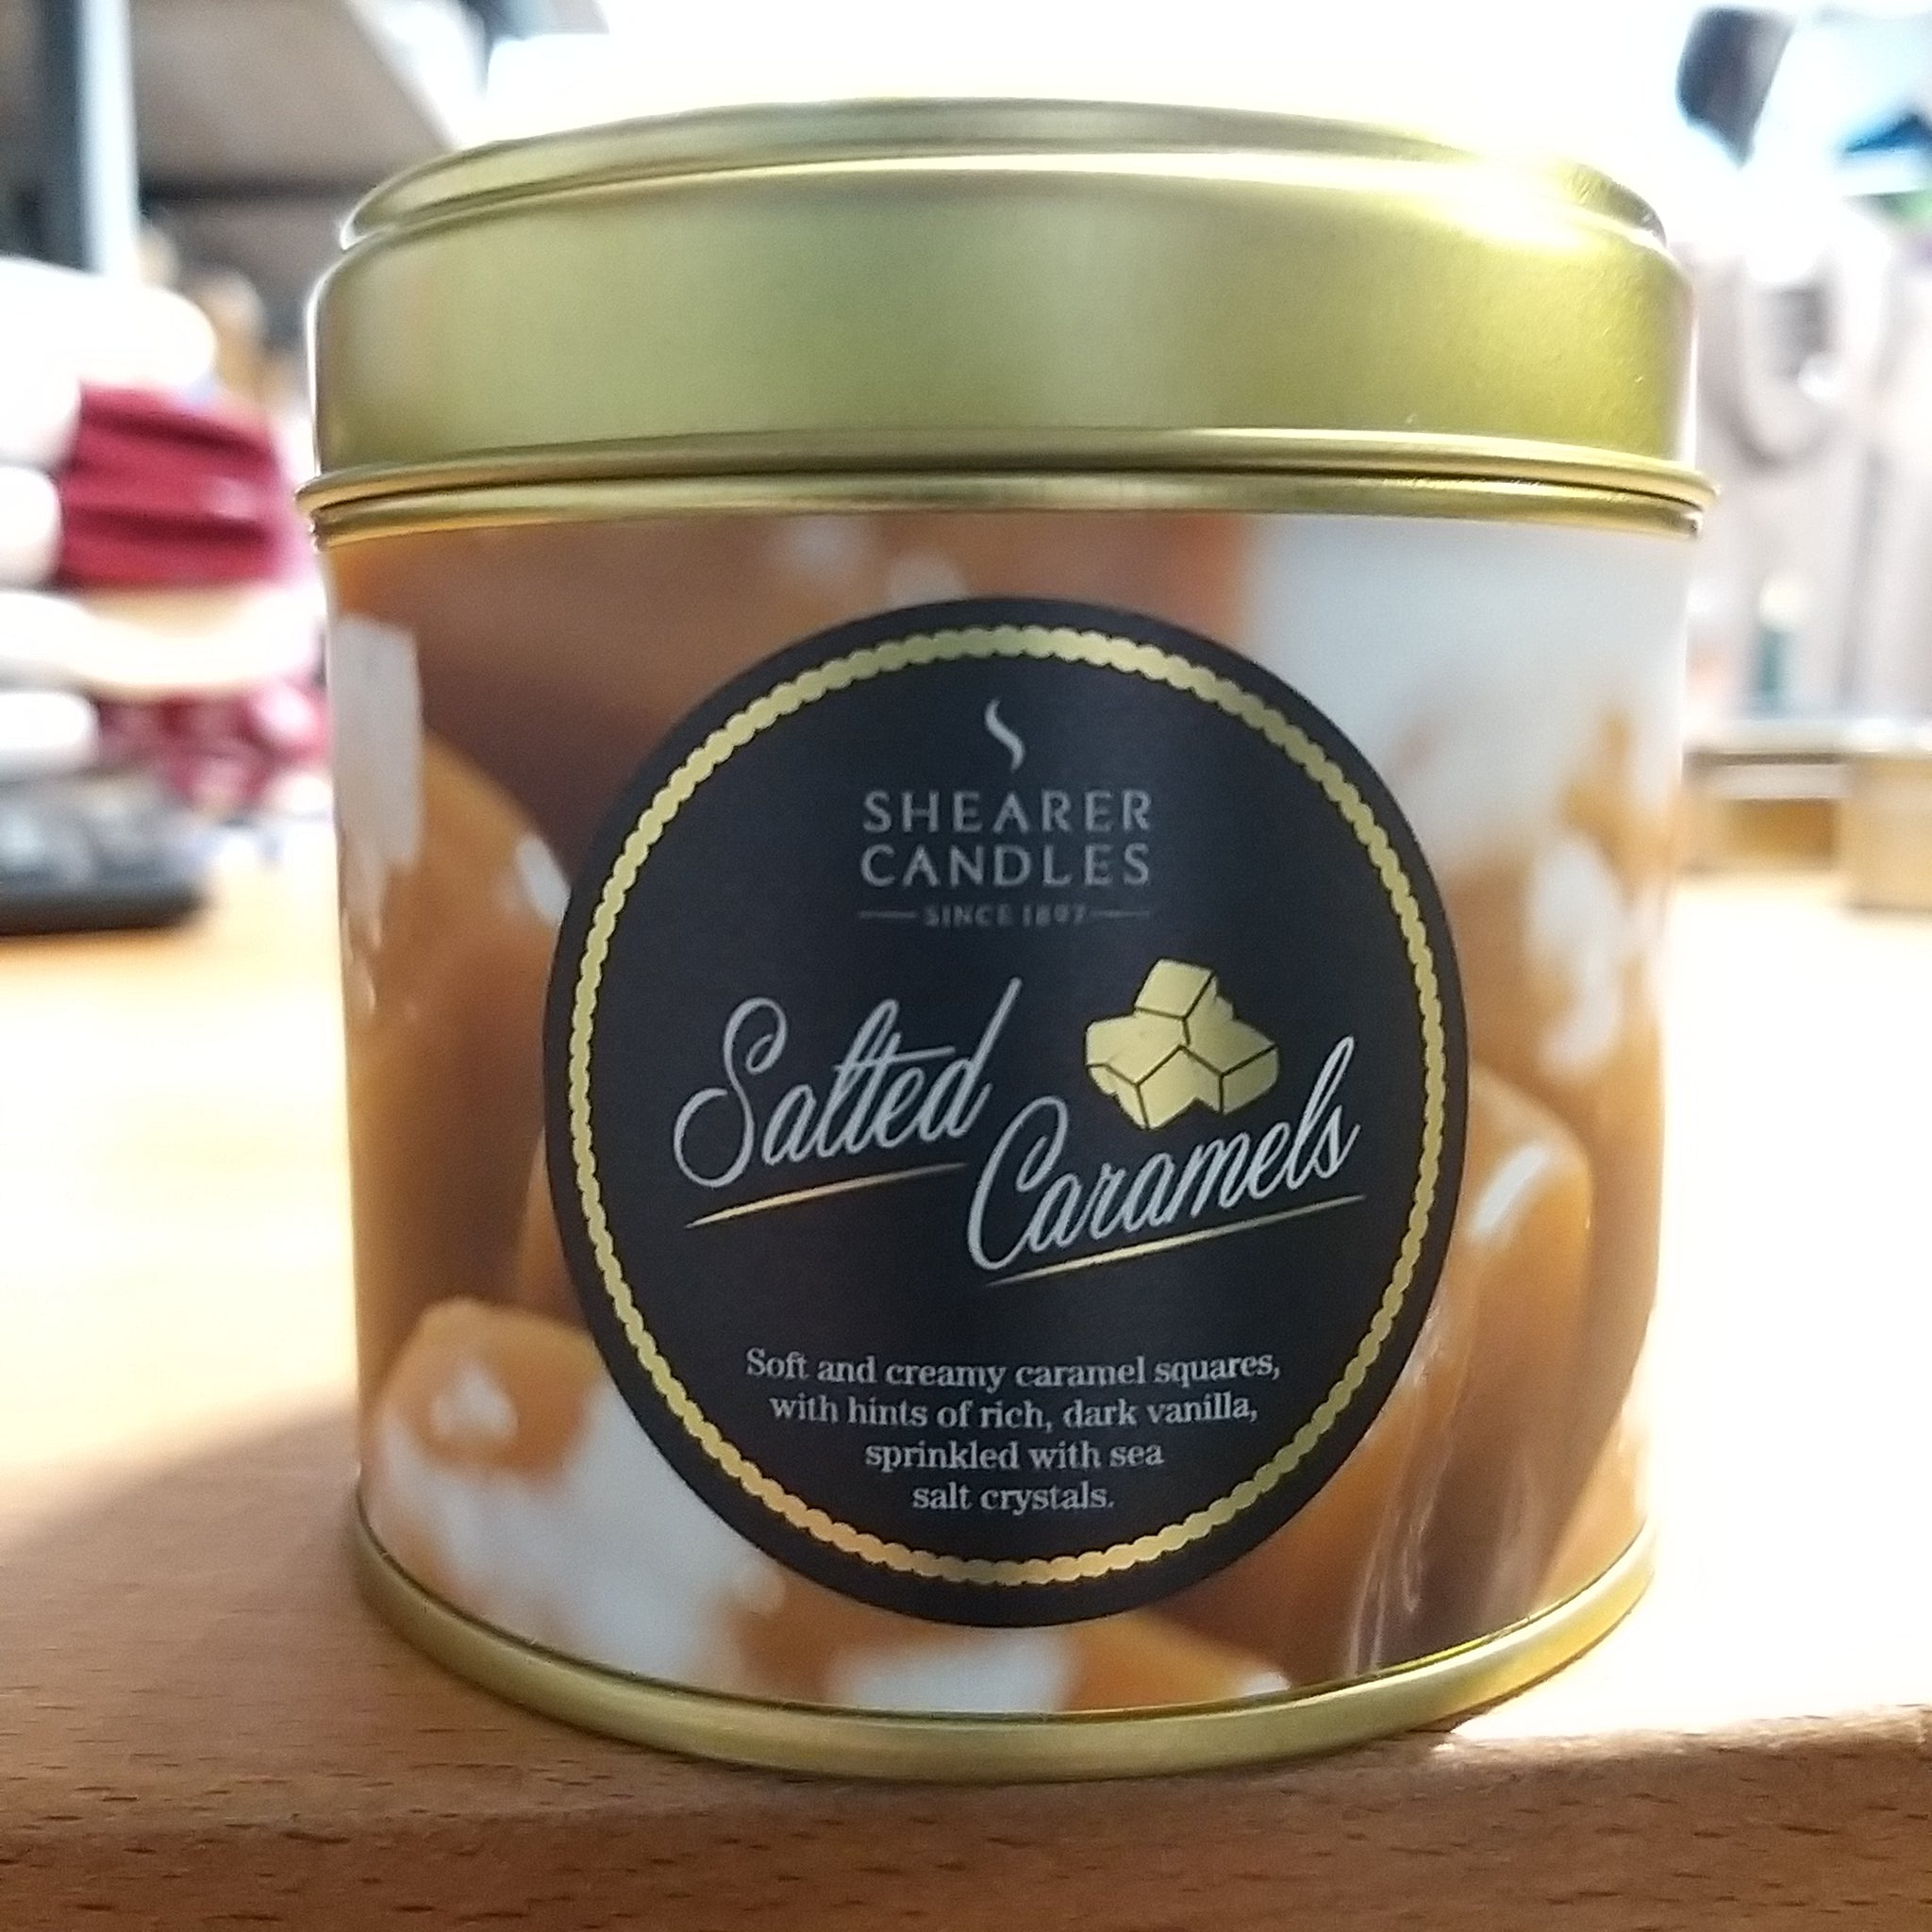 Shearer Salted Caramel Large Candle